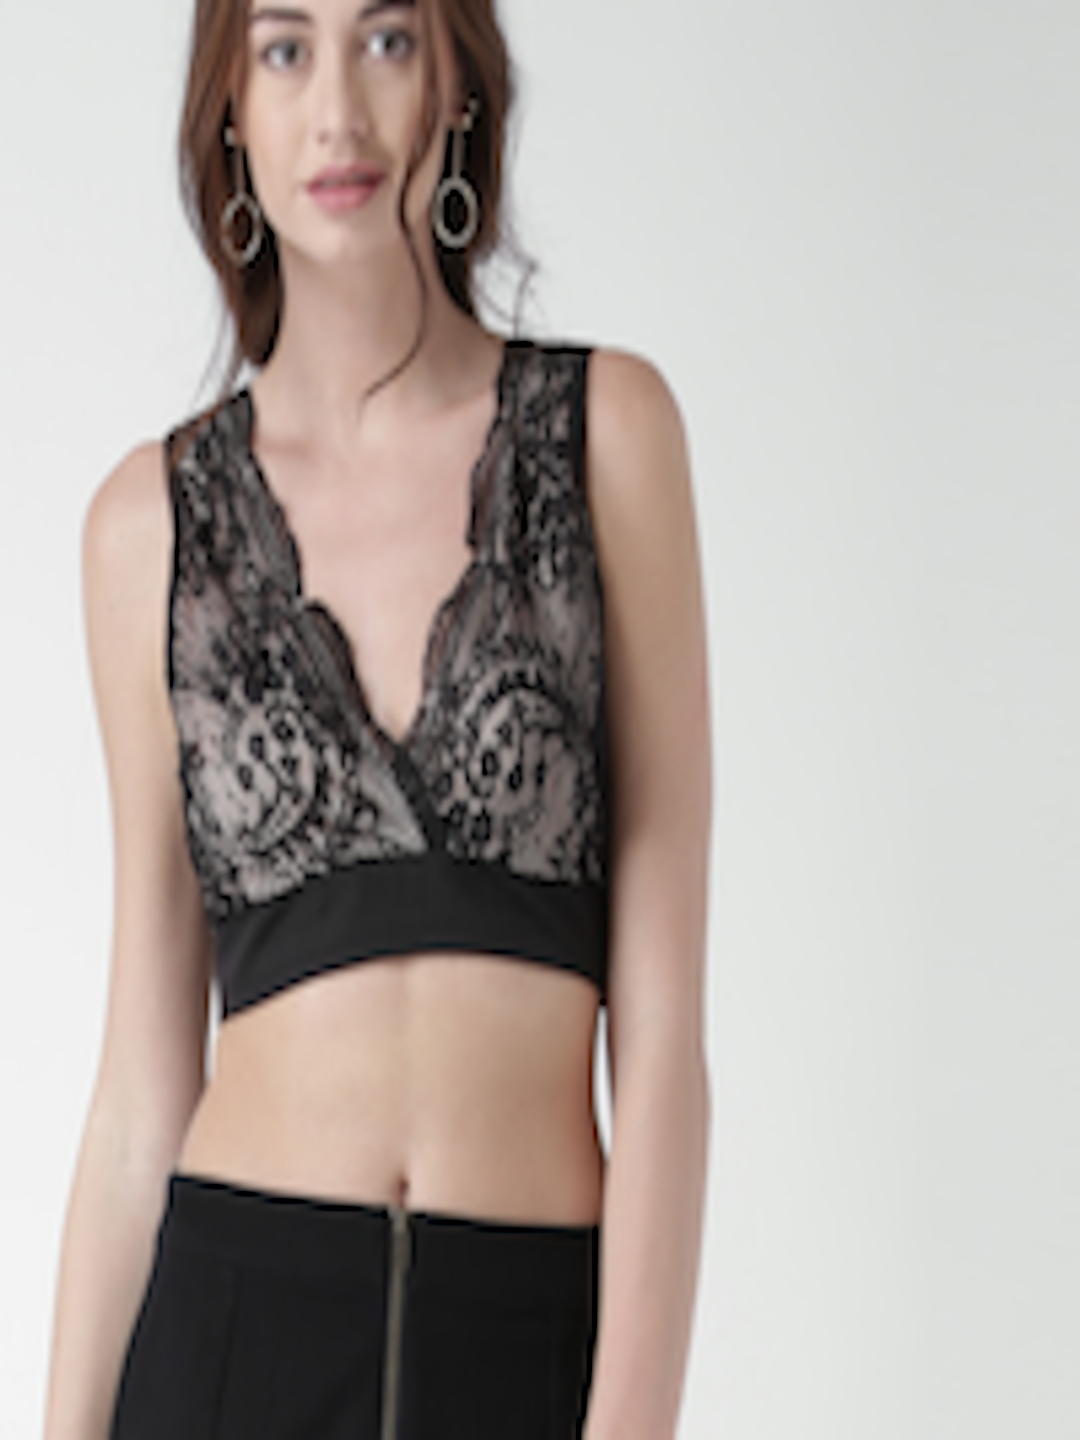 2b8a253f18bdd9 Buy FOREVER 21 Women Black   Nude Coloured Lace Bralette Top - Tops for  Women 1621665